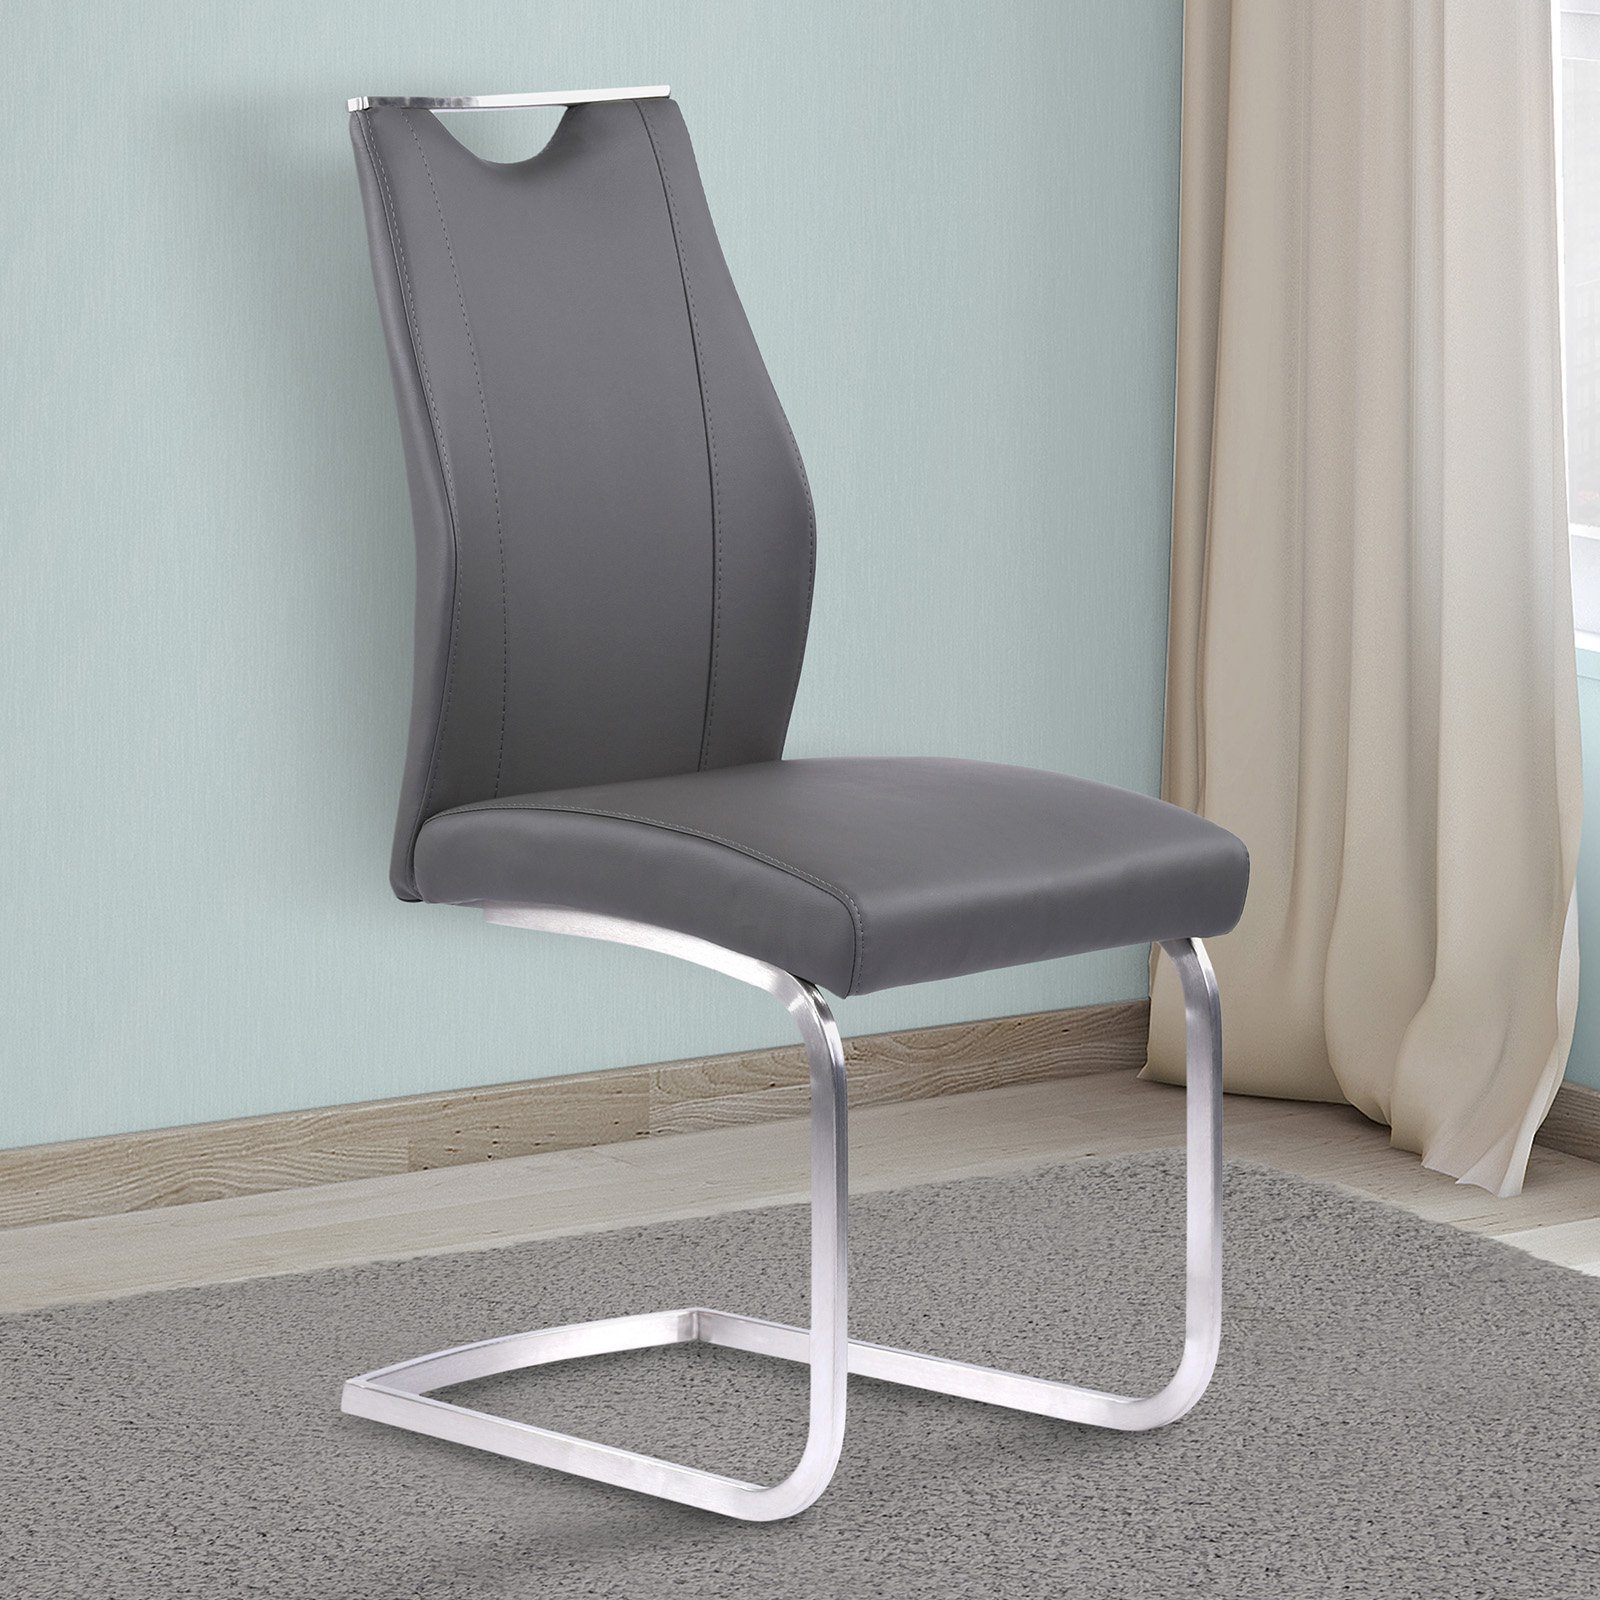 buy popular ee4a3 72774 Armen Living Bravo Contemporary Dining Chair in Gray Faux Leather and  Brushed Stainless Steel Finish - Set of 2